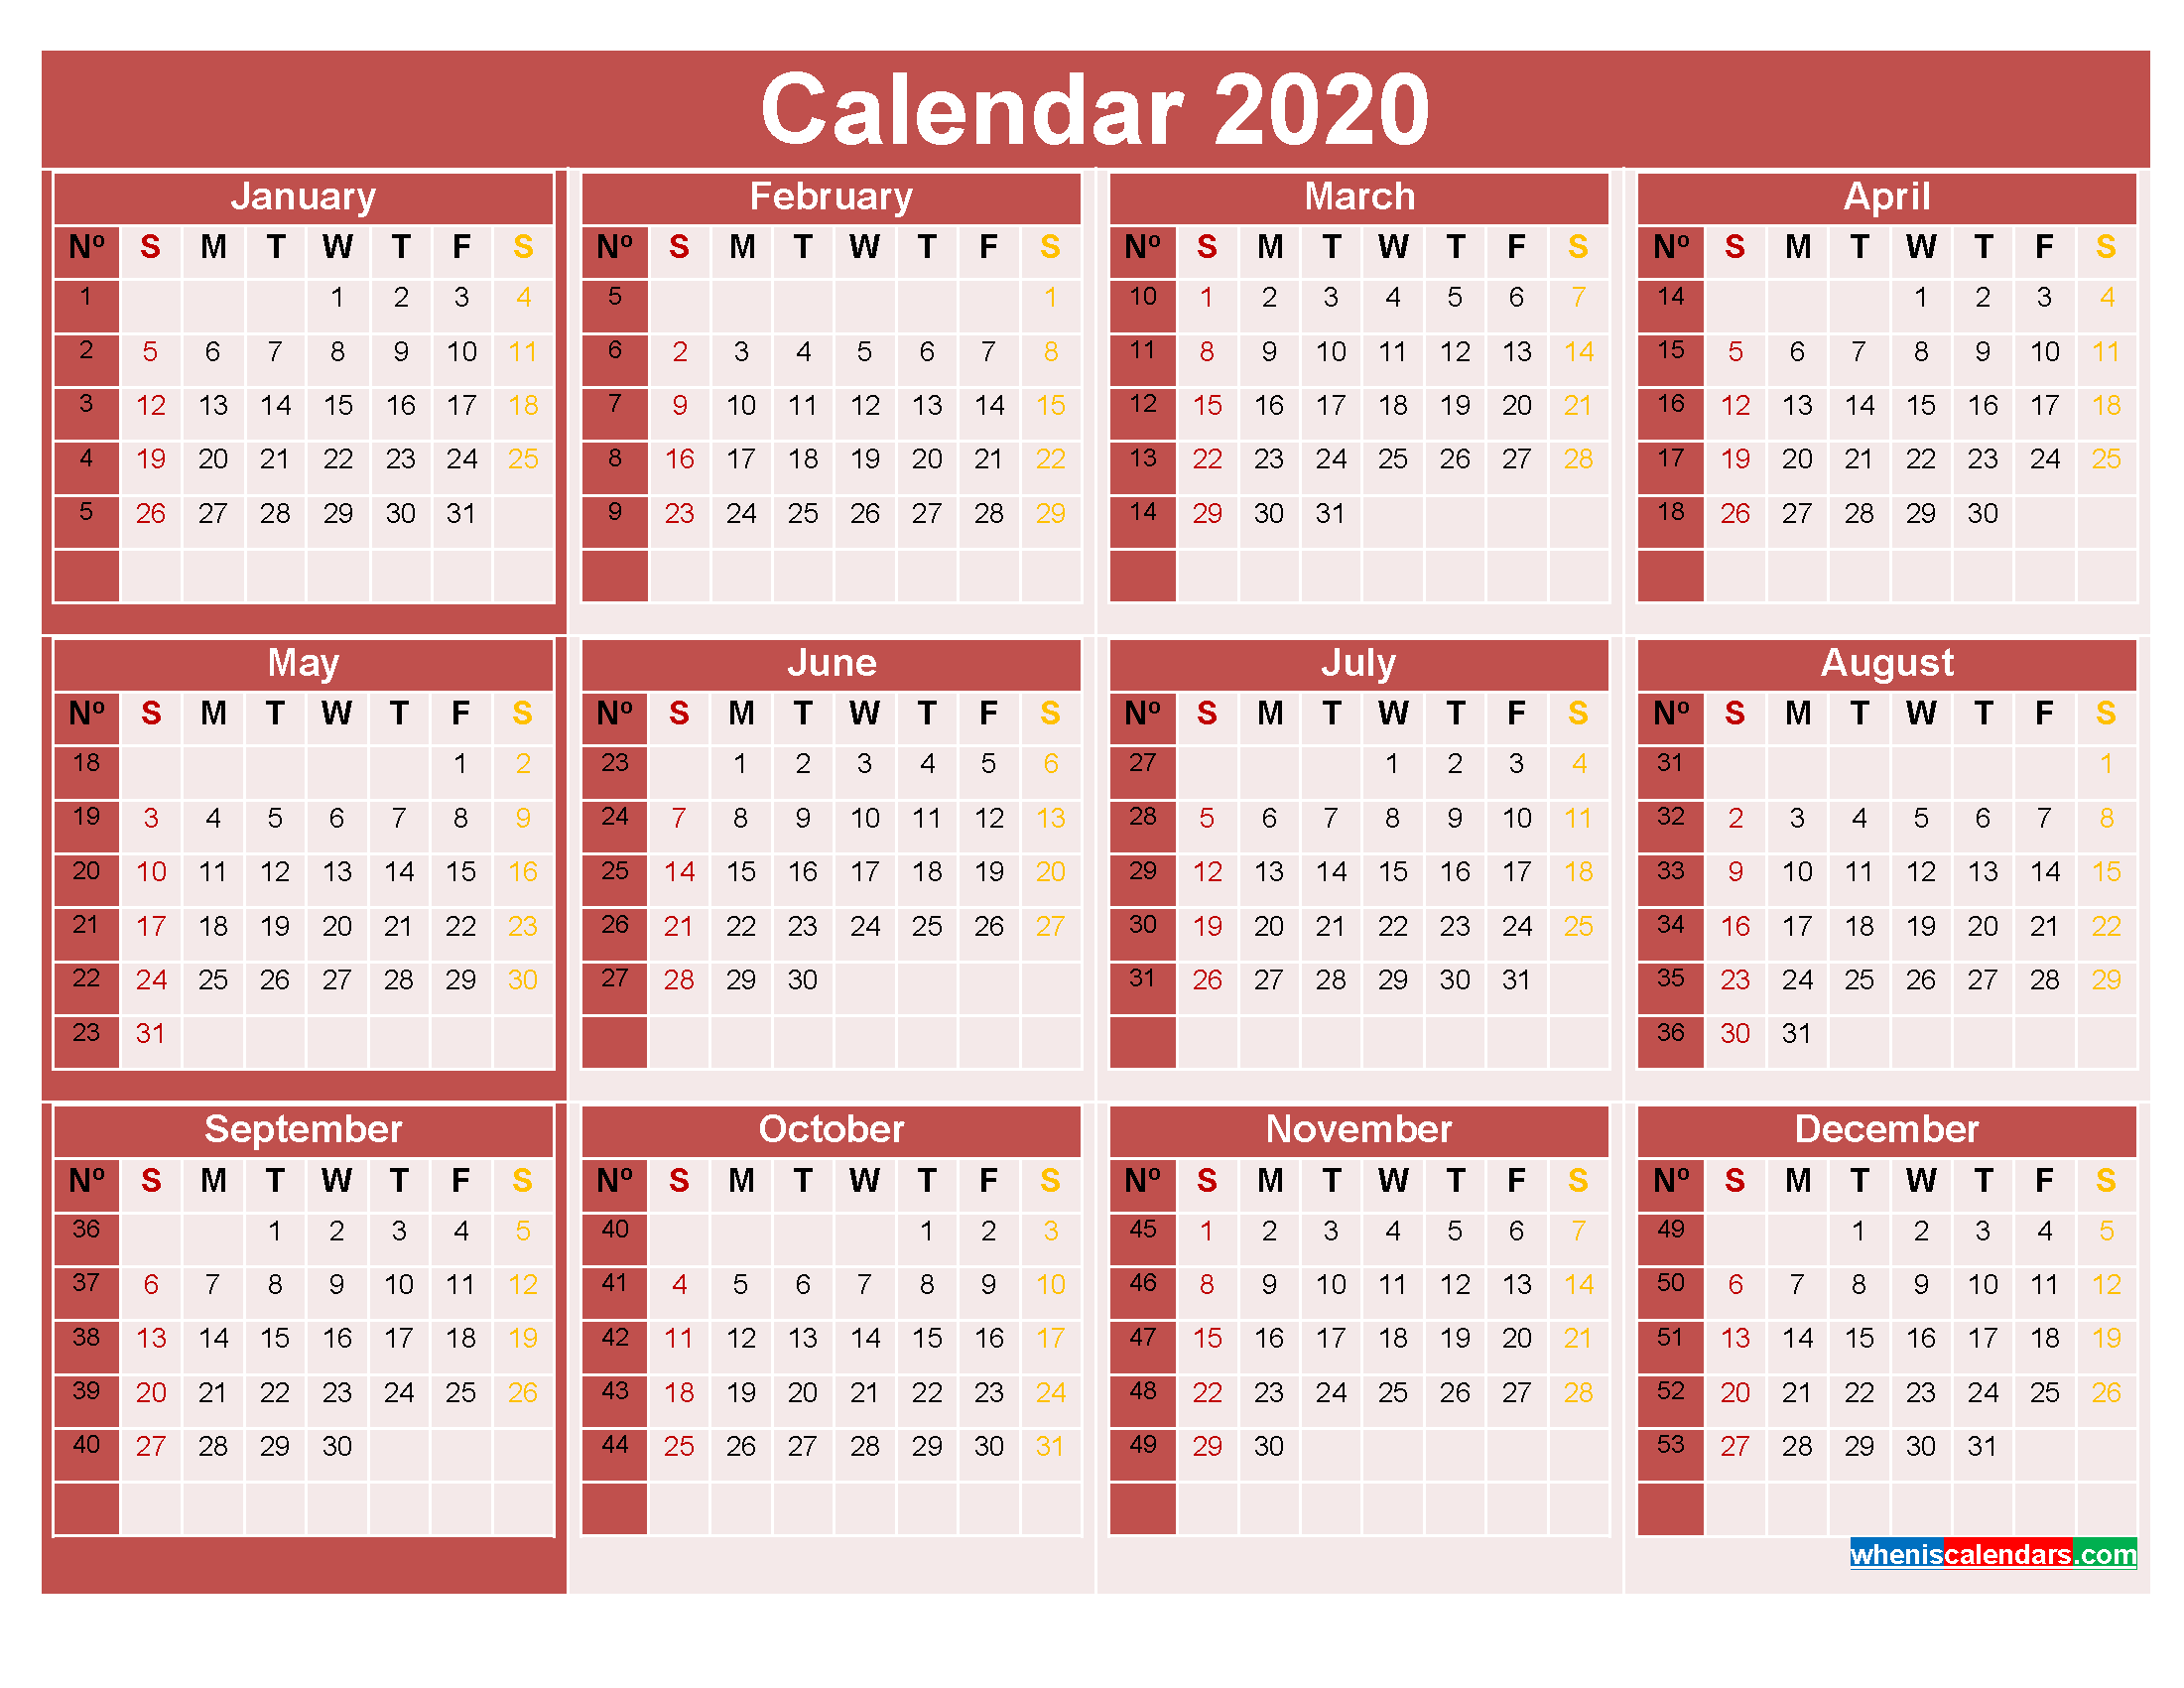 2020 Calendar with Week Numbers Printable Word, PDF